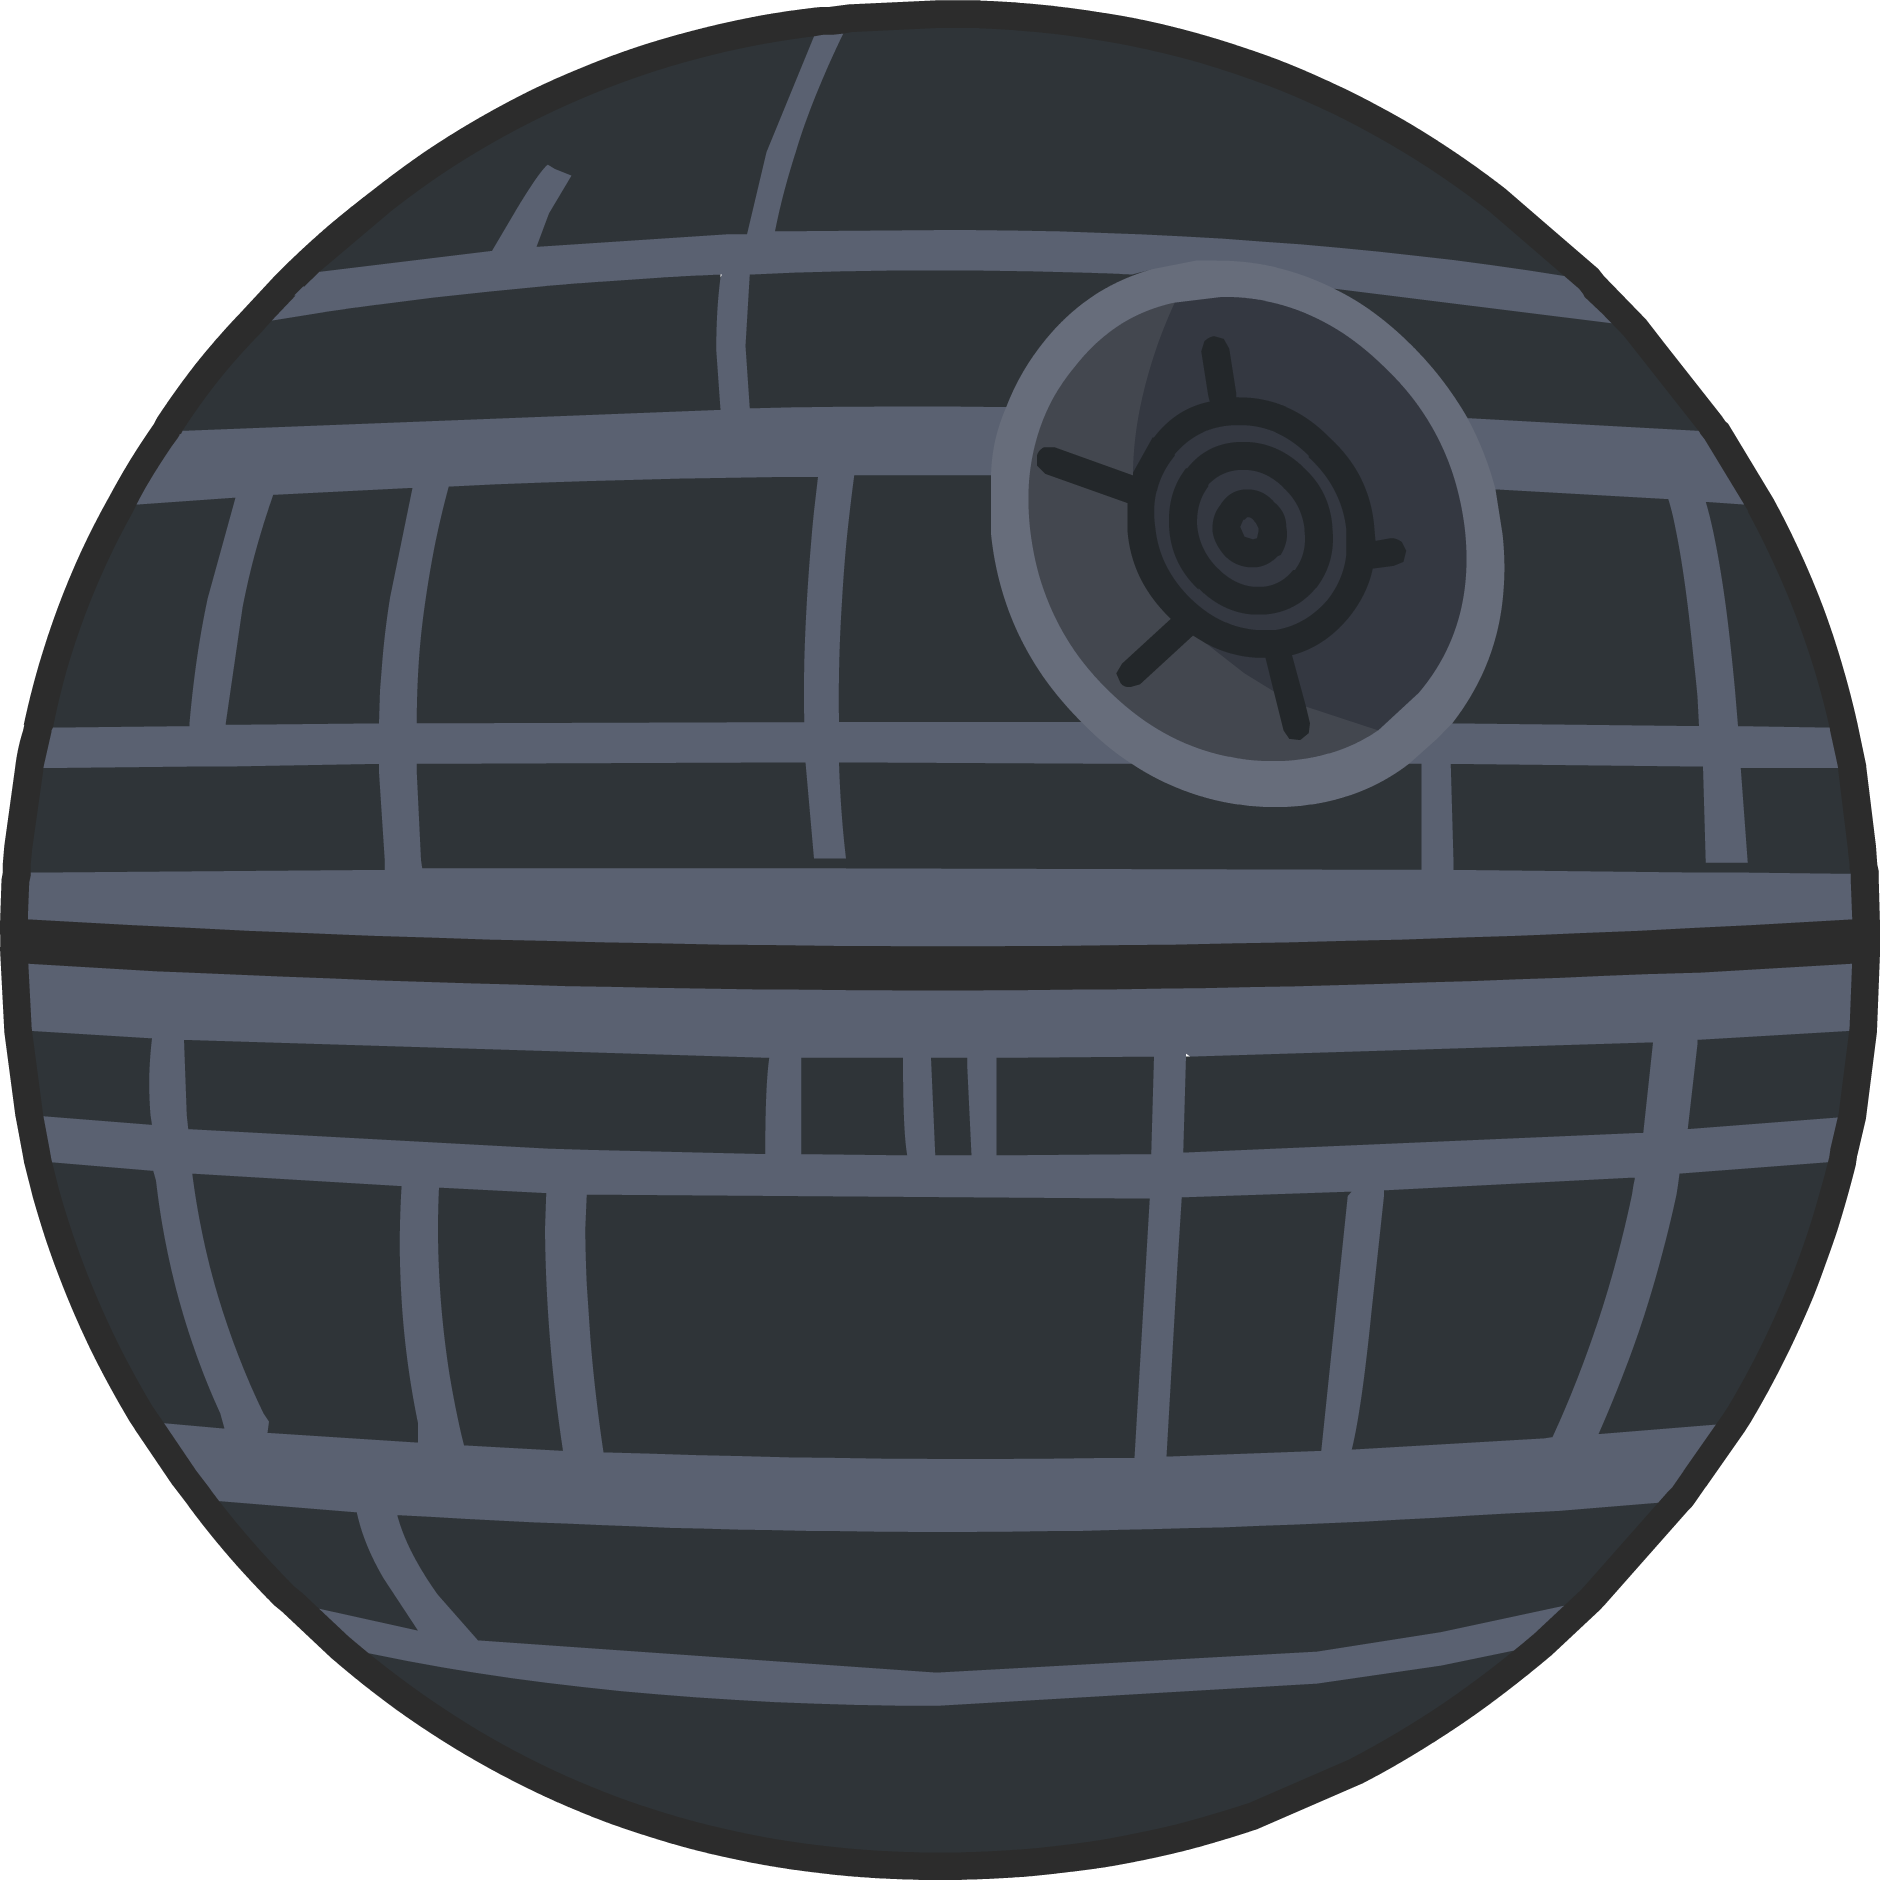 death star drawing outline - Google Search